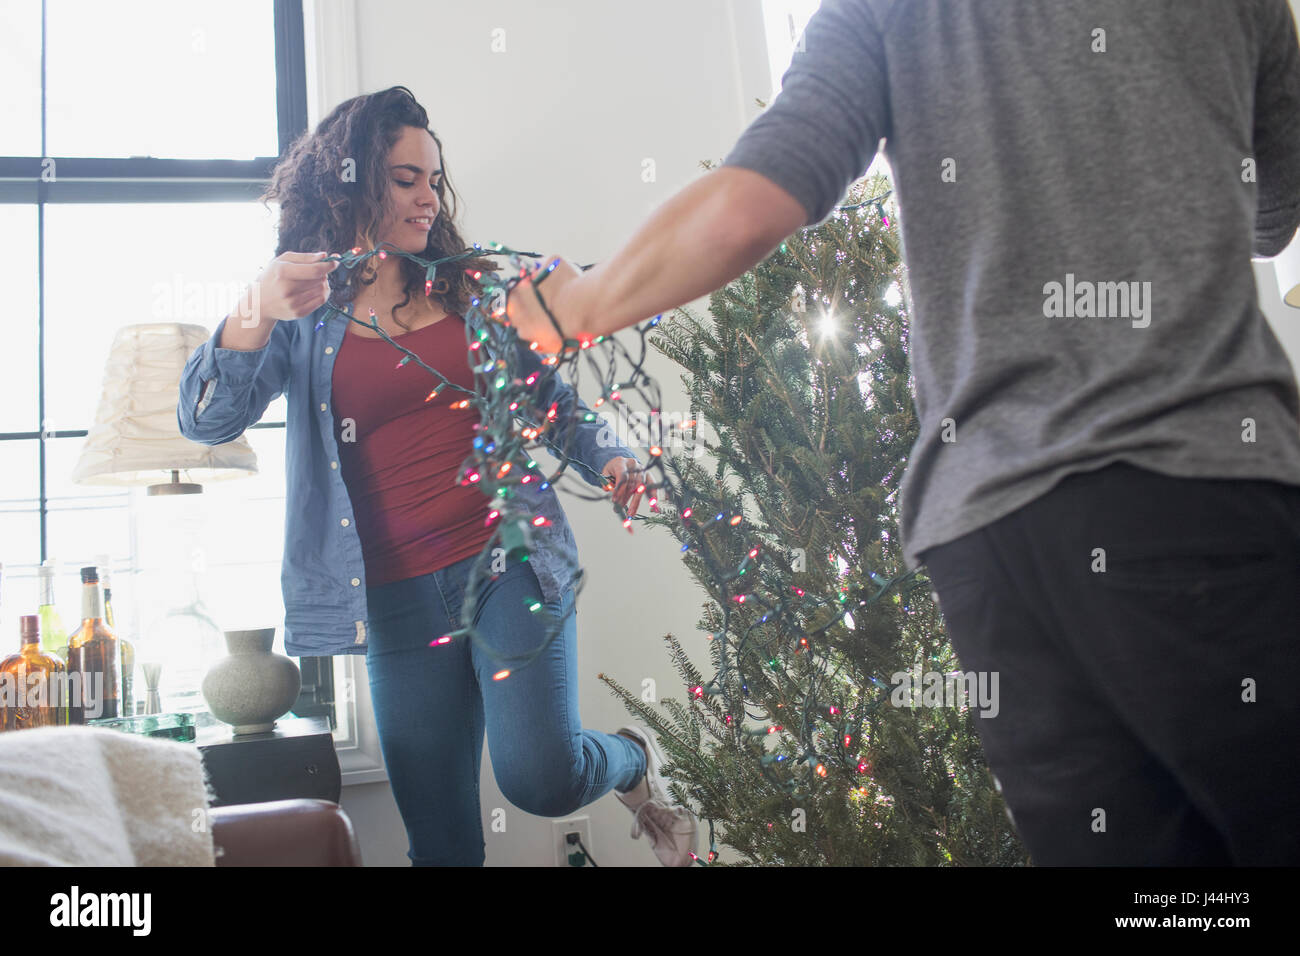 A young woman and man decorating a Christmas tree Stock Photo